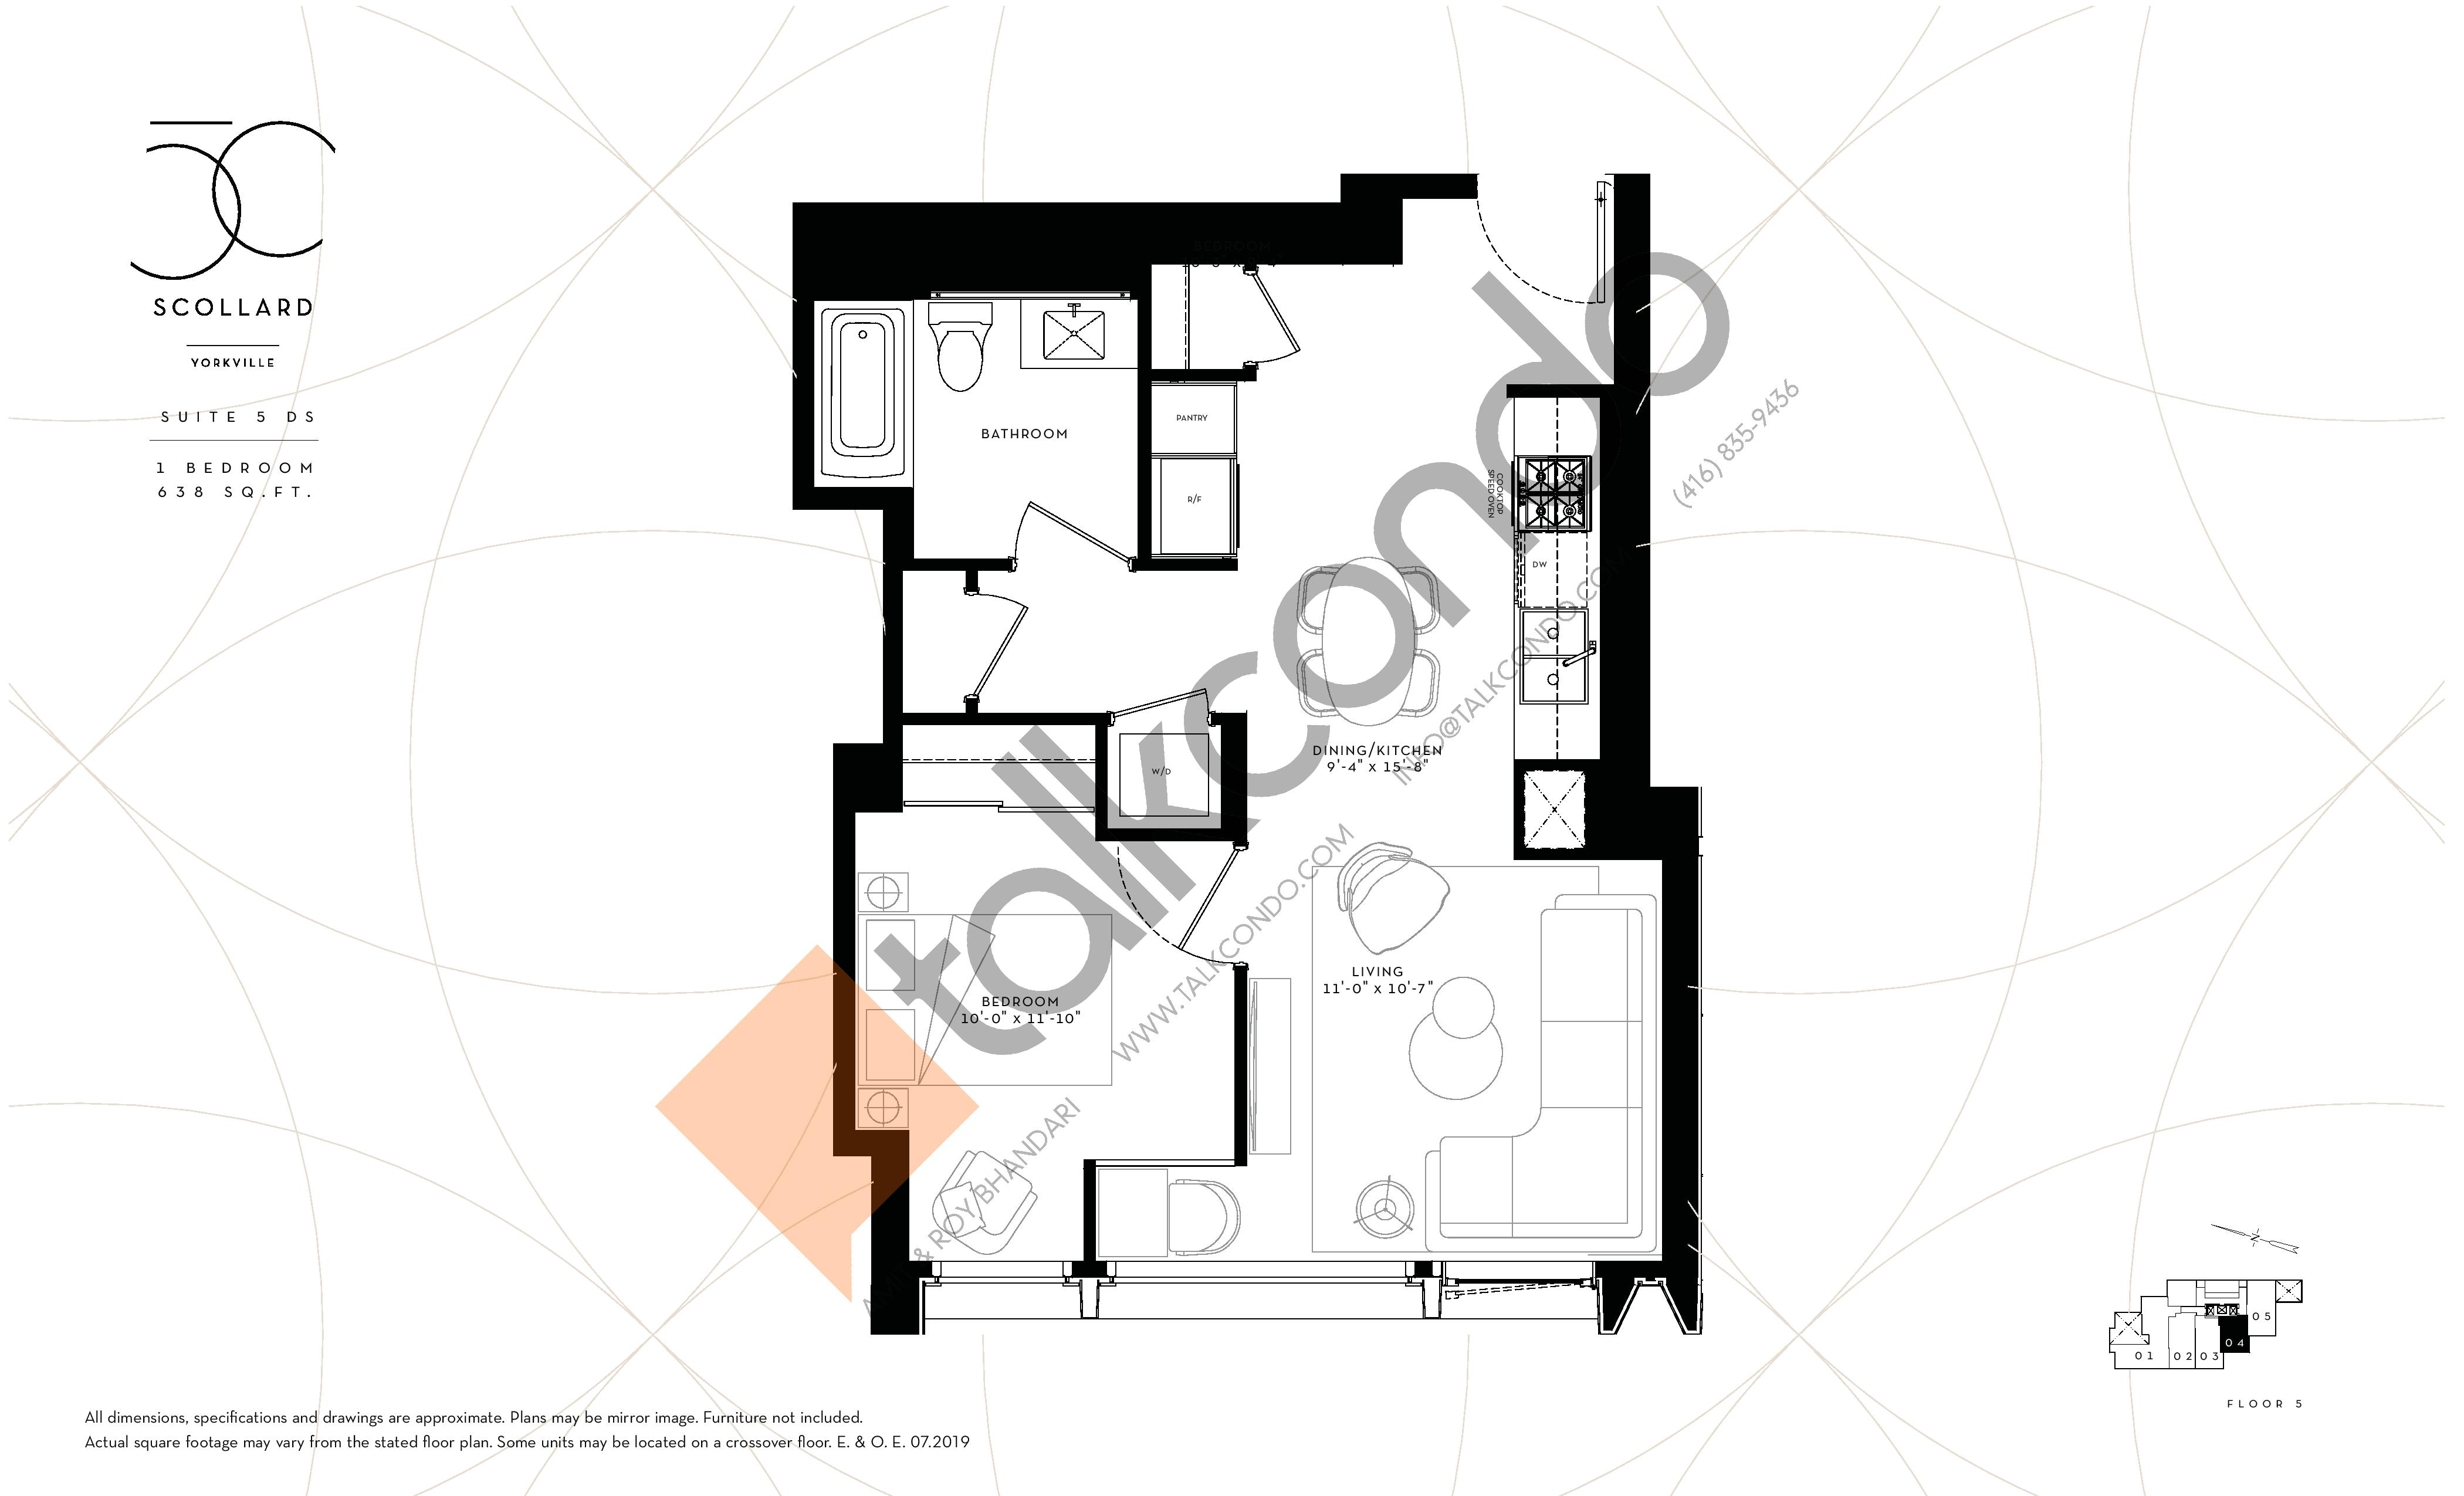 Suite 5 DS Floor Plan at Fifty Scollard Condos - 638 sq.ft